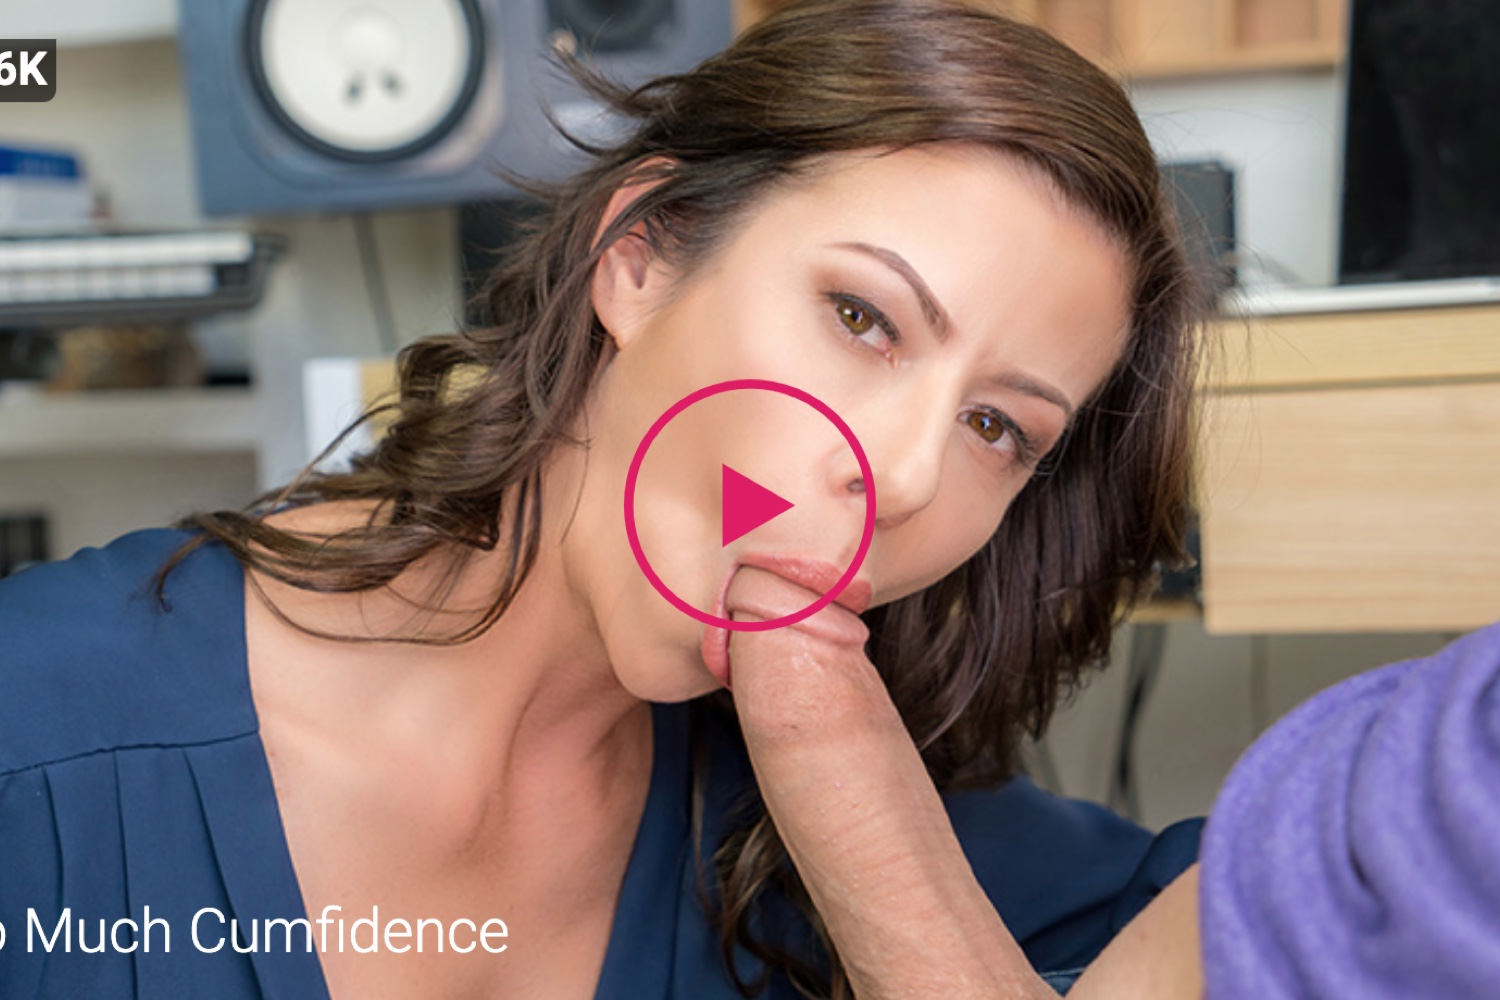 Too Much Cumfidence - Alexis Fawx VR Porn - Alexis Fawx Virtual Reality Porn